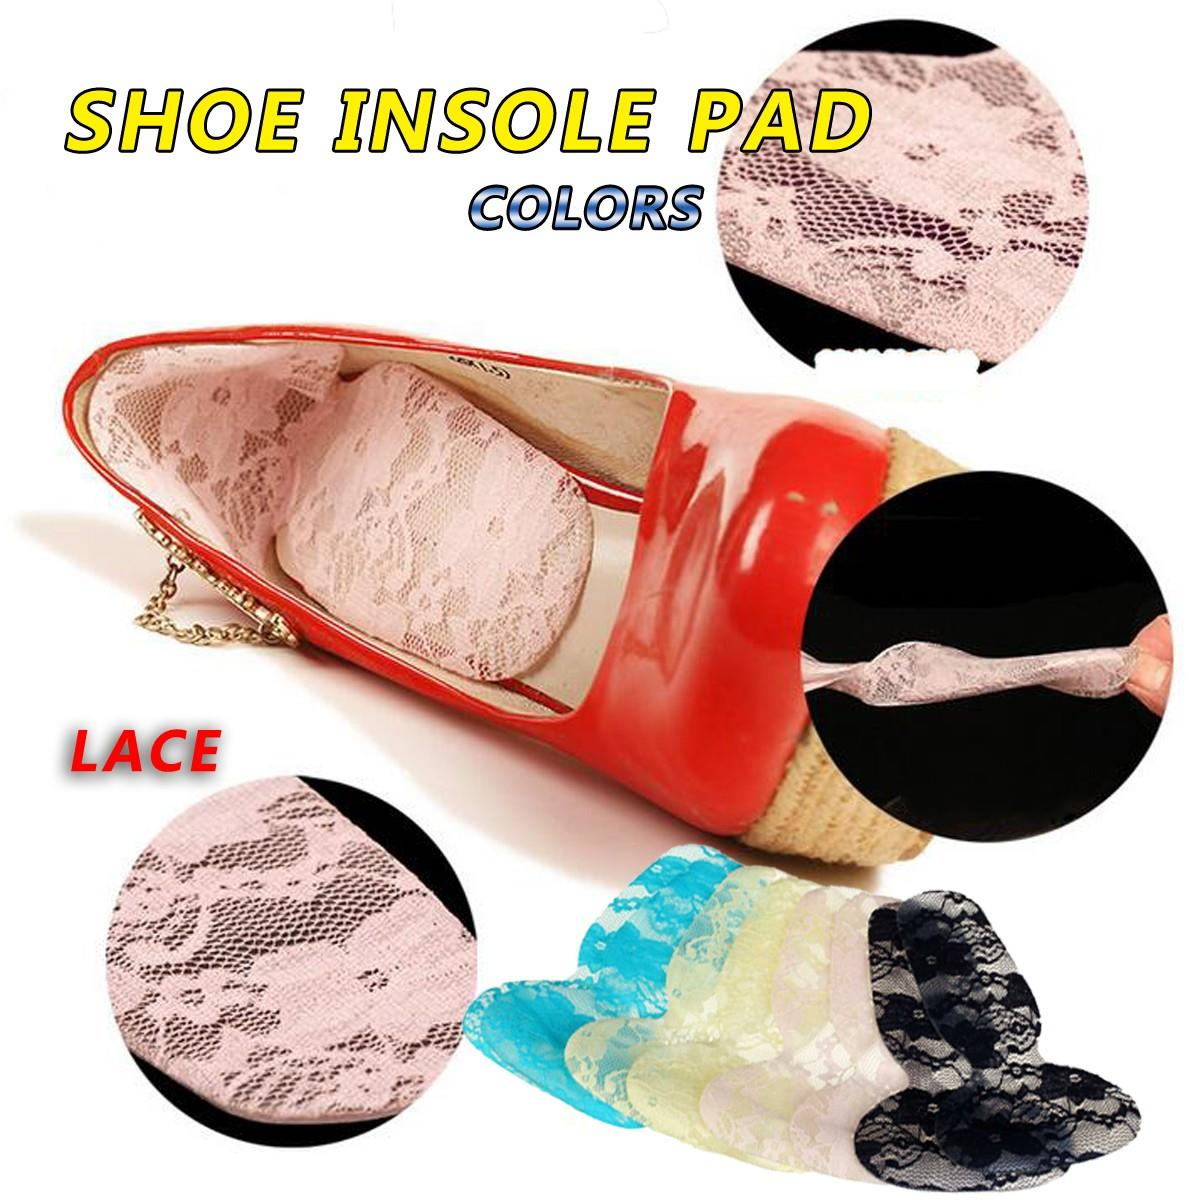 NIS 2018 Protector Anti Slip Cushion Shoe Insert 4 Colors 1 Pair High Heel Insole Pads Soft Silicone Lace Gel Foot Care lace insert crop top and lace insert skirt twinset